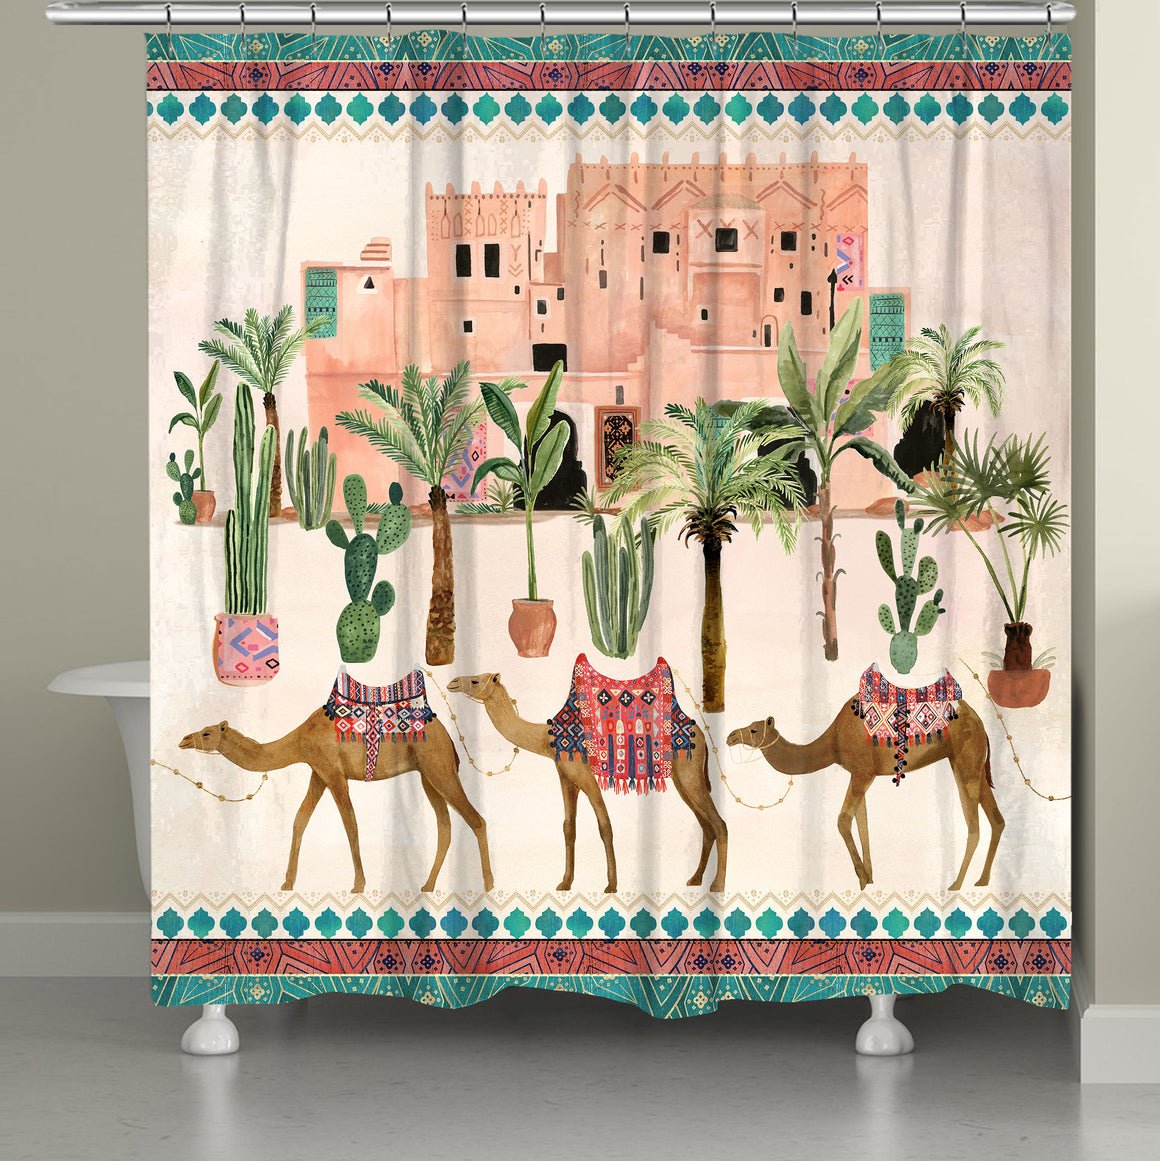 "Bring the scenery of Marrakesh to your bathroom decor with this new trendy boho must-have. The ""Marrakesh Dream Shower Curtain"" exposes a fun, painterly design of trendy pattern dressed camels desert plants and distant adobe's. Transform your bathroom in to a Marrakesh dream with this art infused design!"